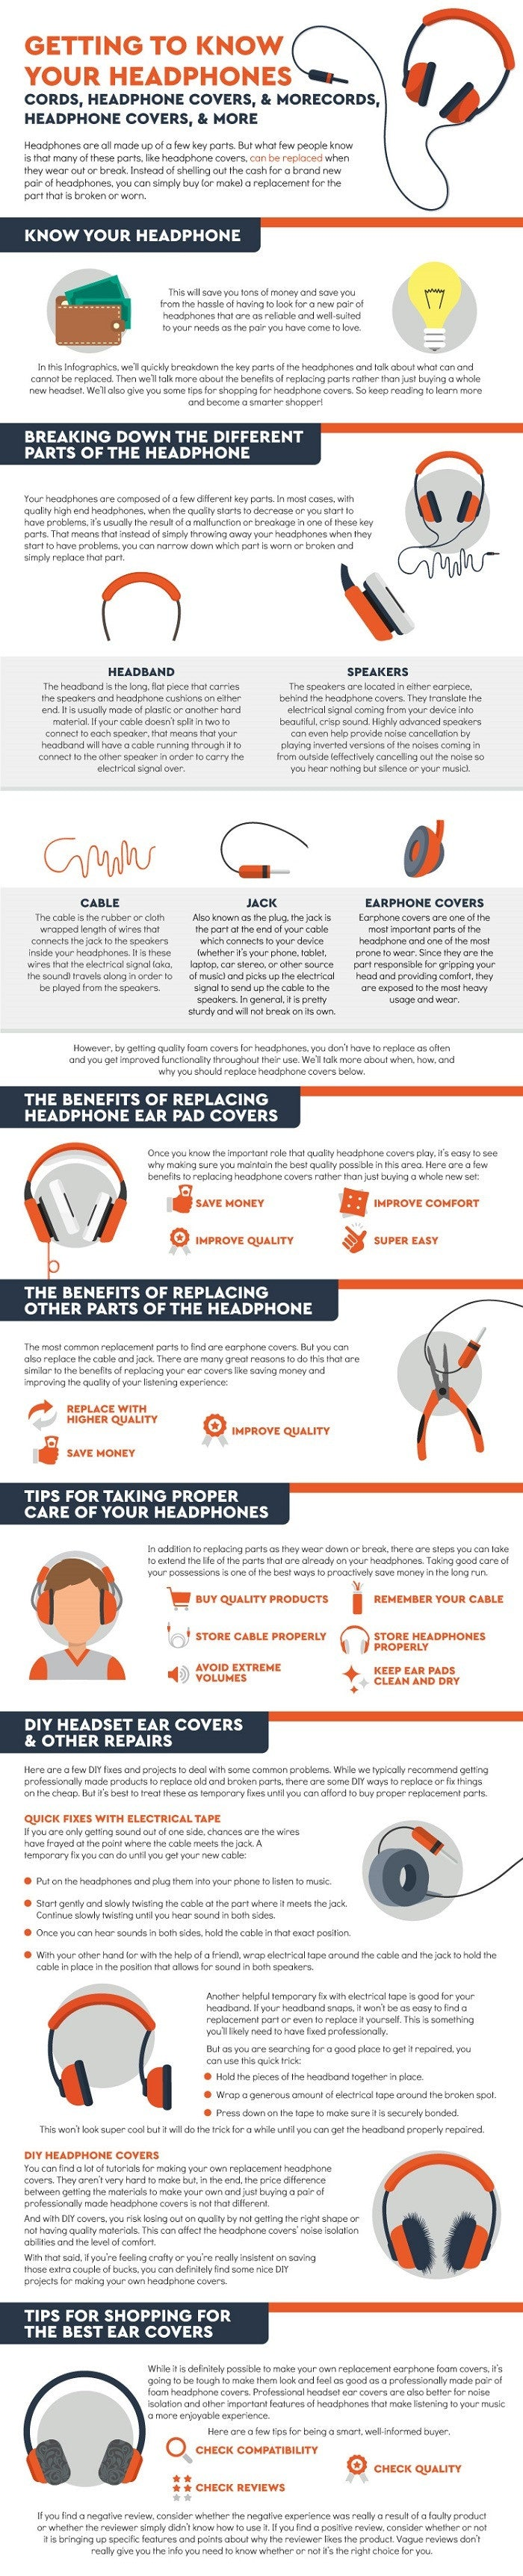 Headphones Guide